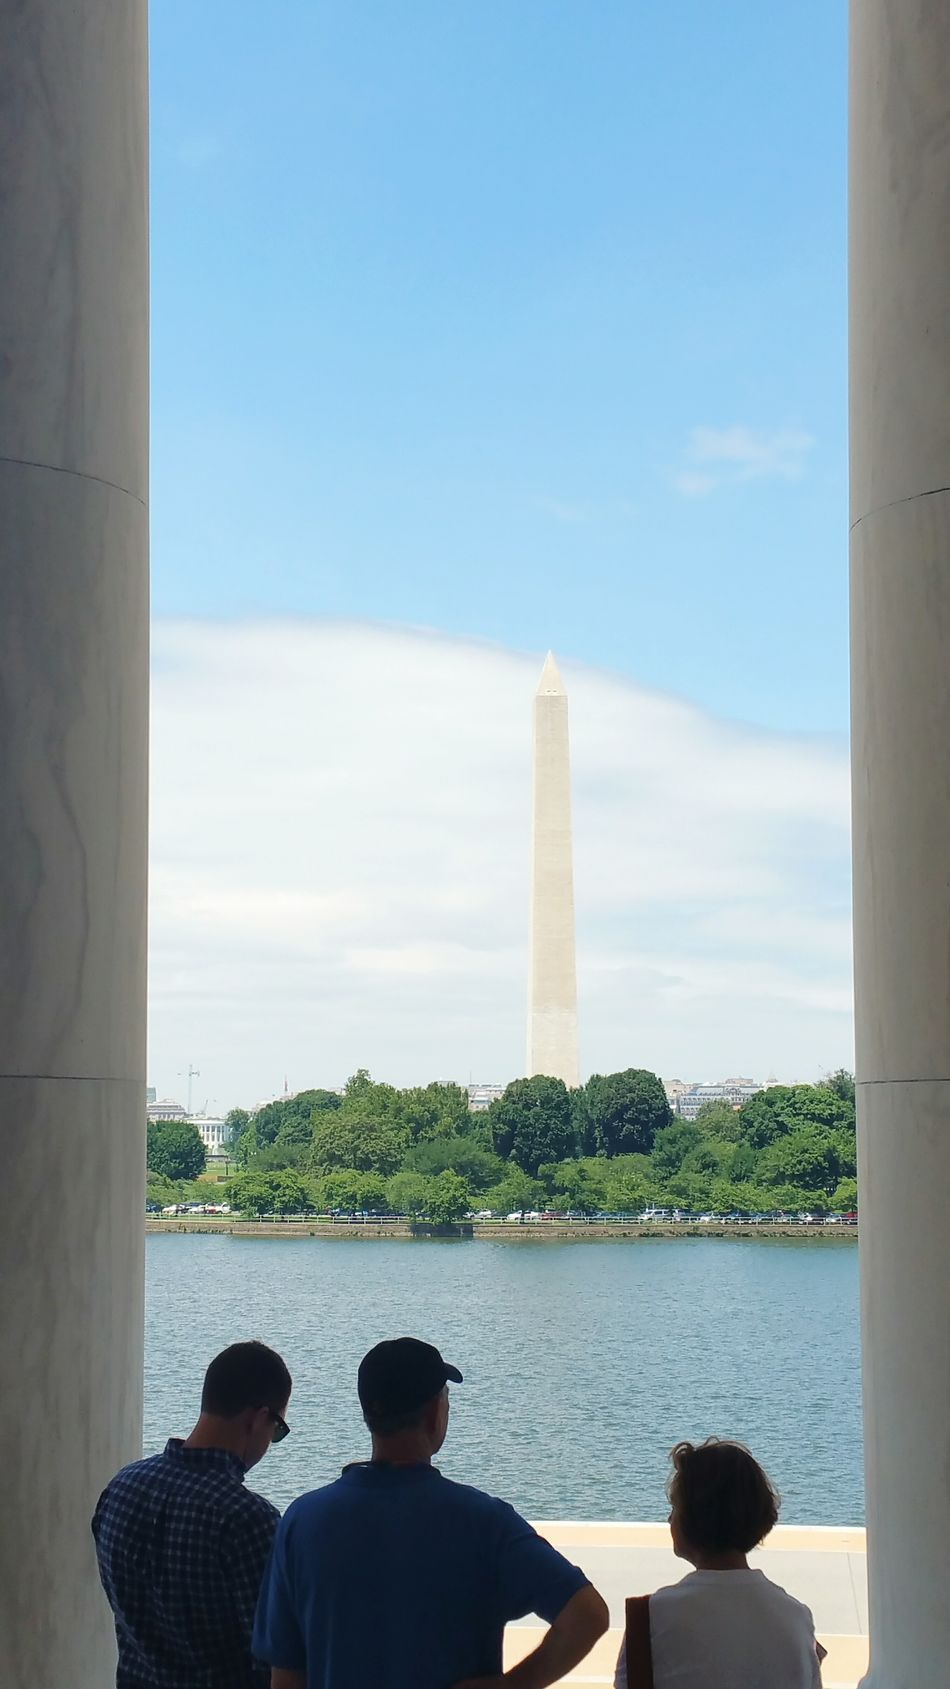 The Washington monument from inside Jefferson's monument